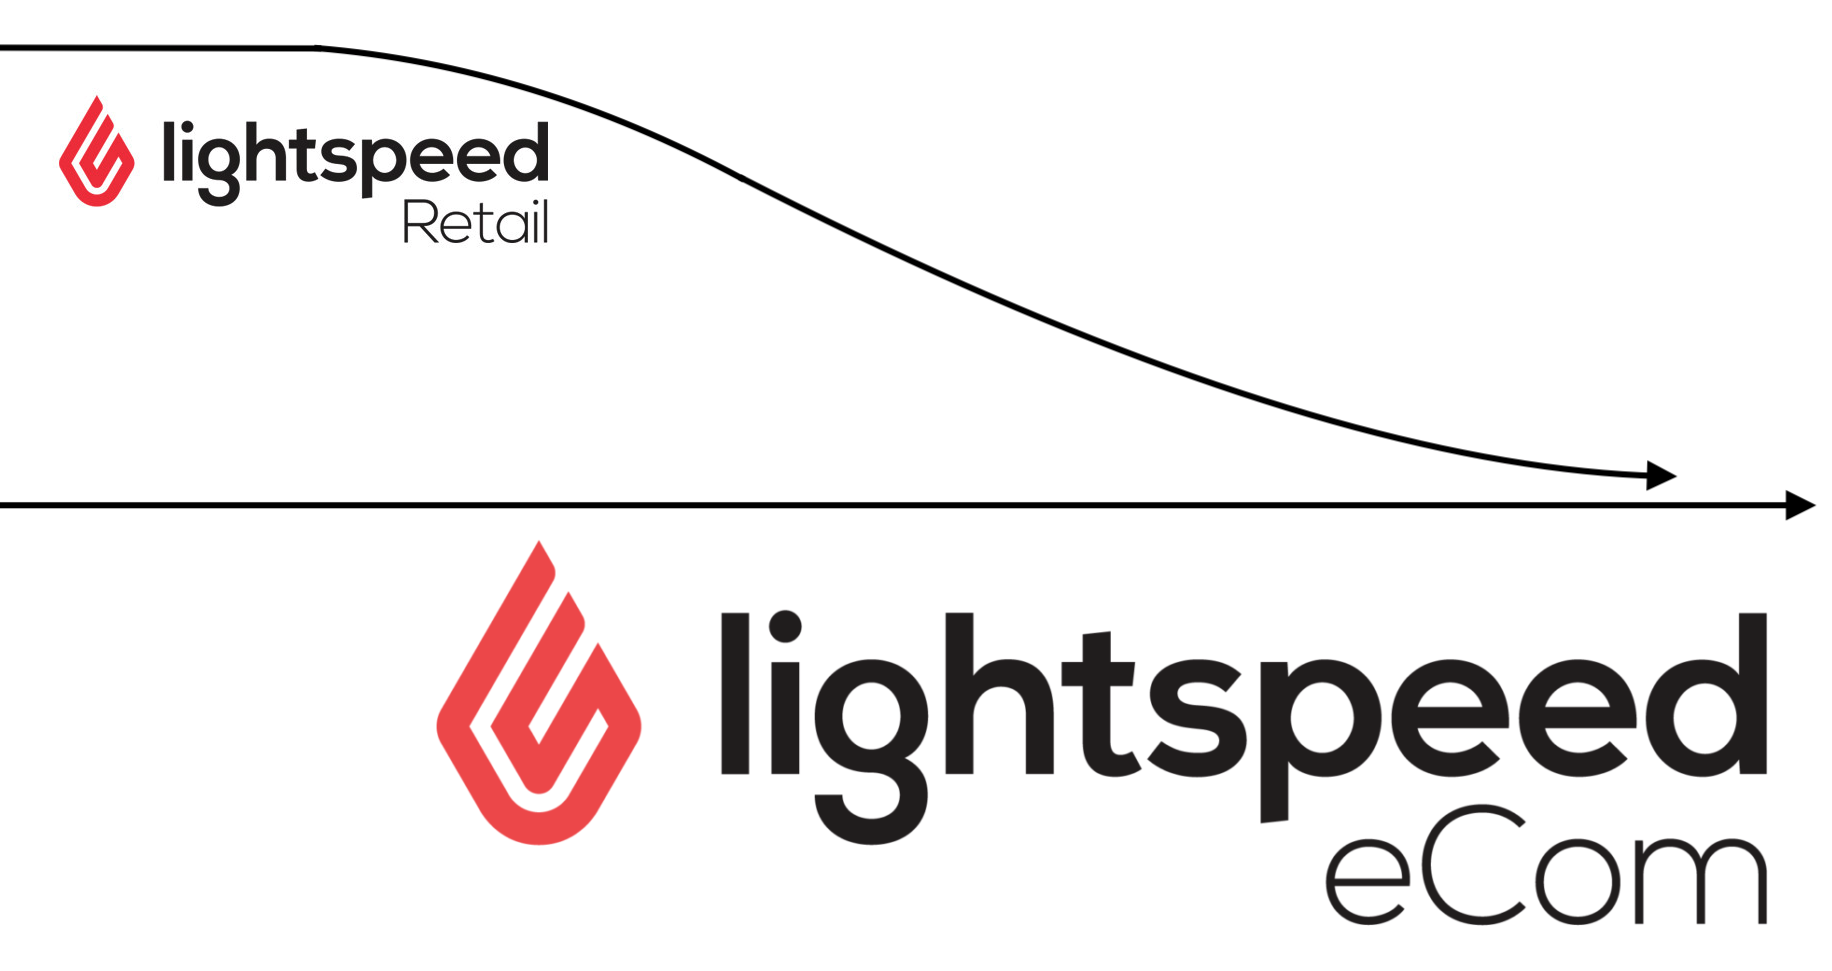 Shows both the Lightspeed Retail and eCom logos representing arrows. The Retail arrow is merging with the eCom one.